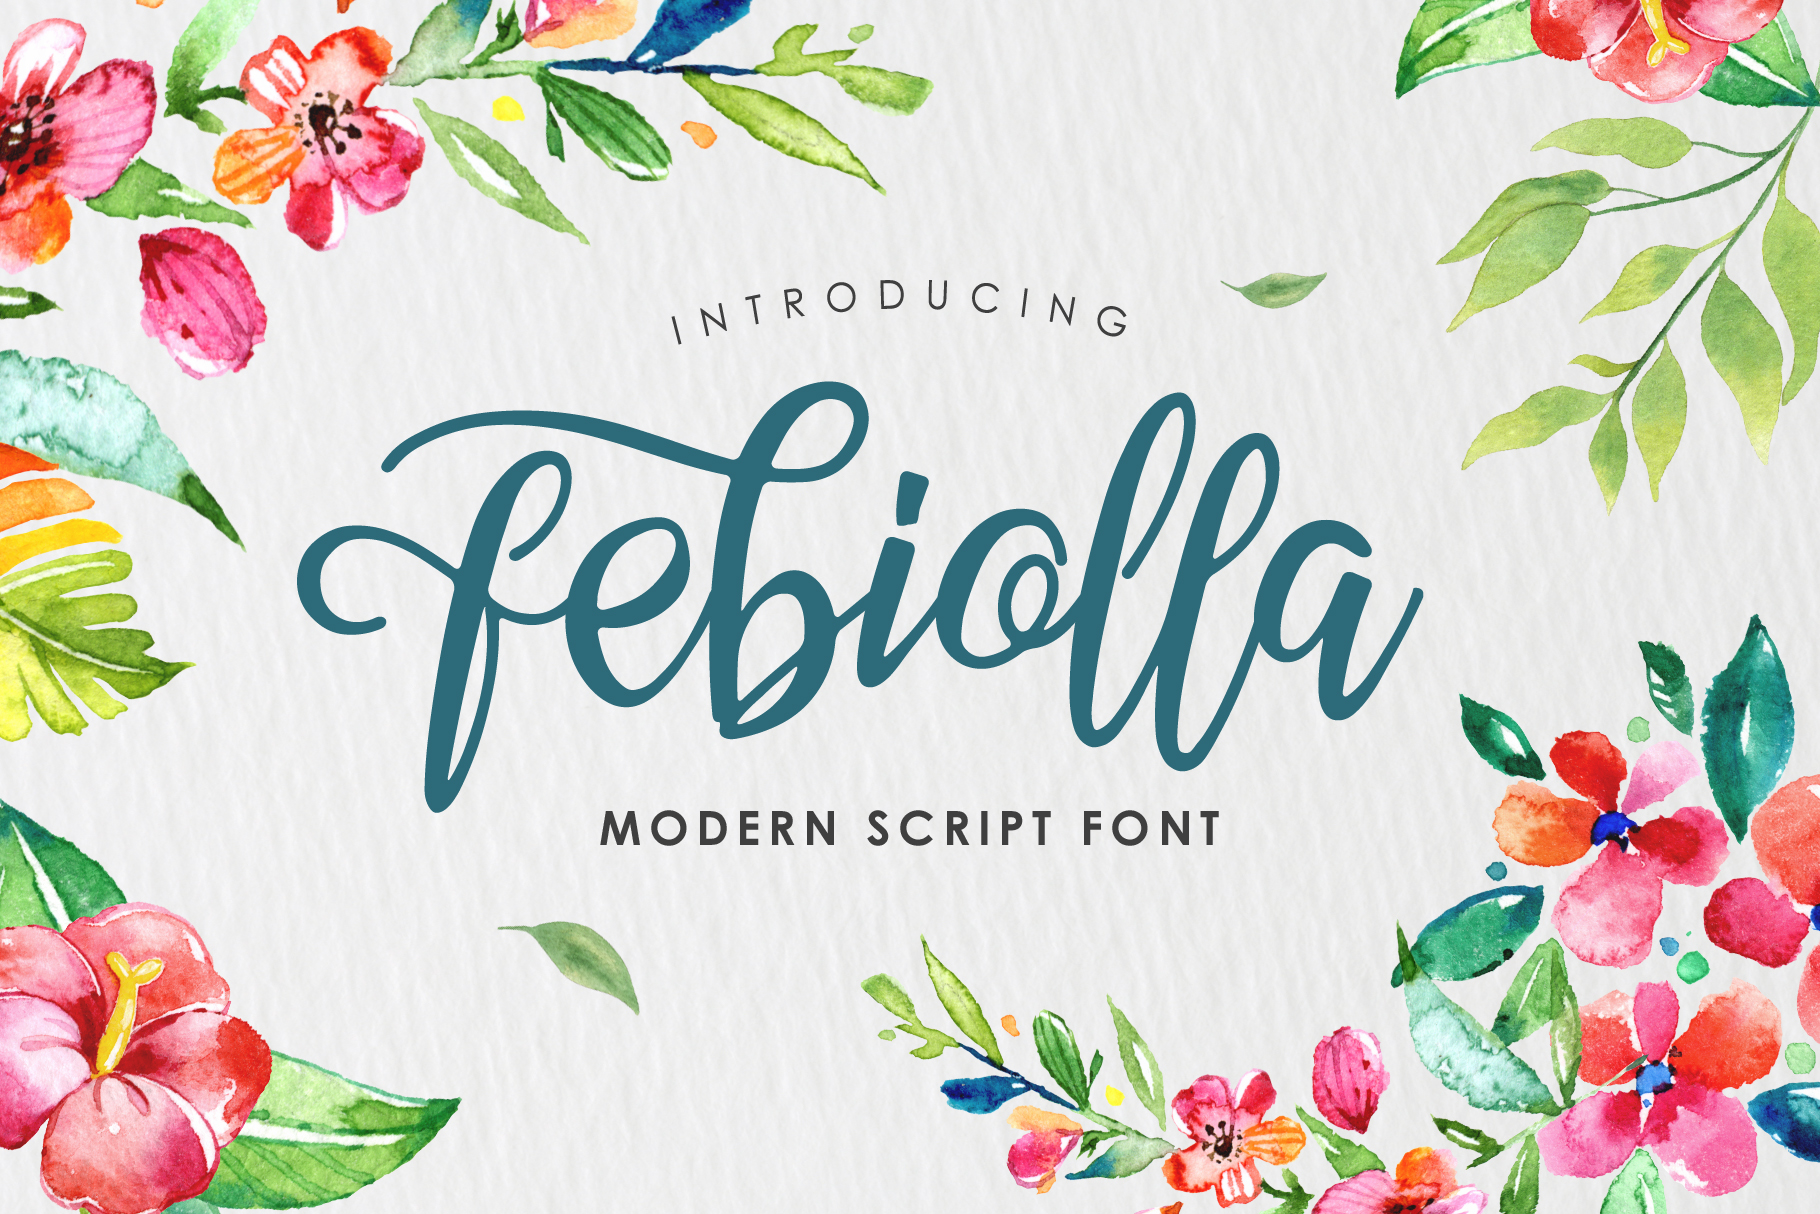 76 Fonts in 1 Font Collection example image 9